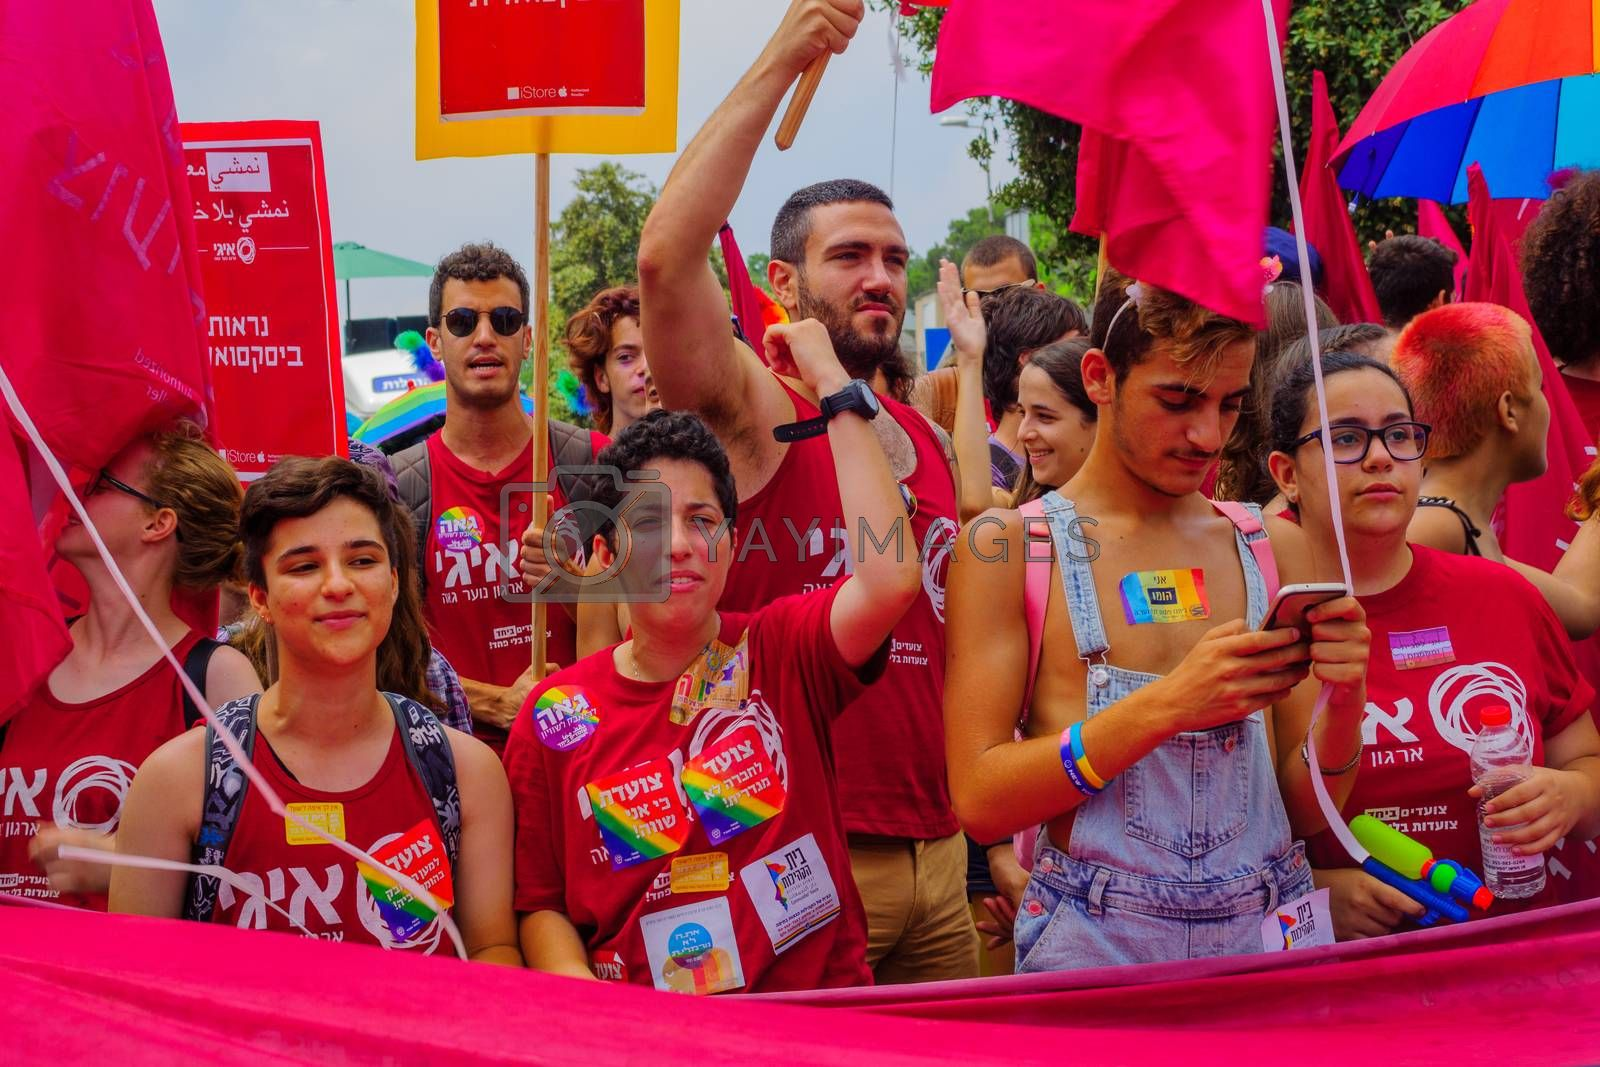 HAIFA, Israel - June 30, 2017: People march in the annual pride parade of the LGBT community, in the streets of Haifa, Israel